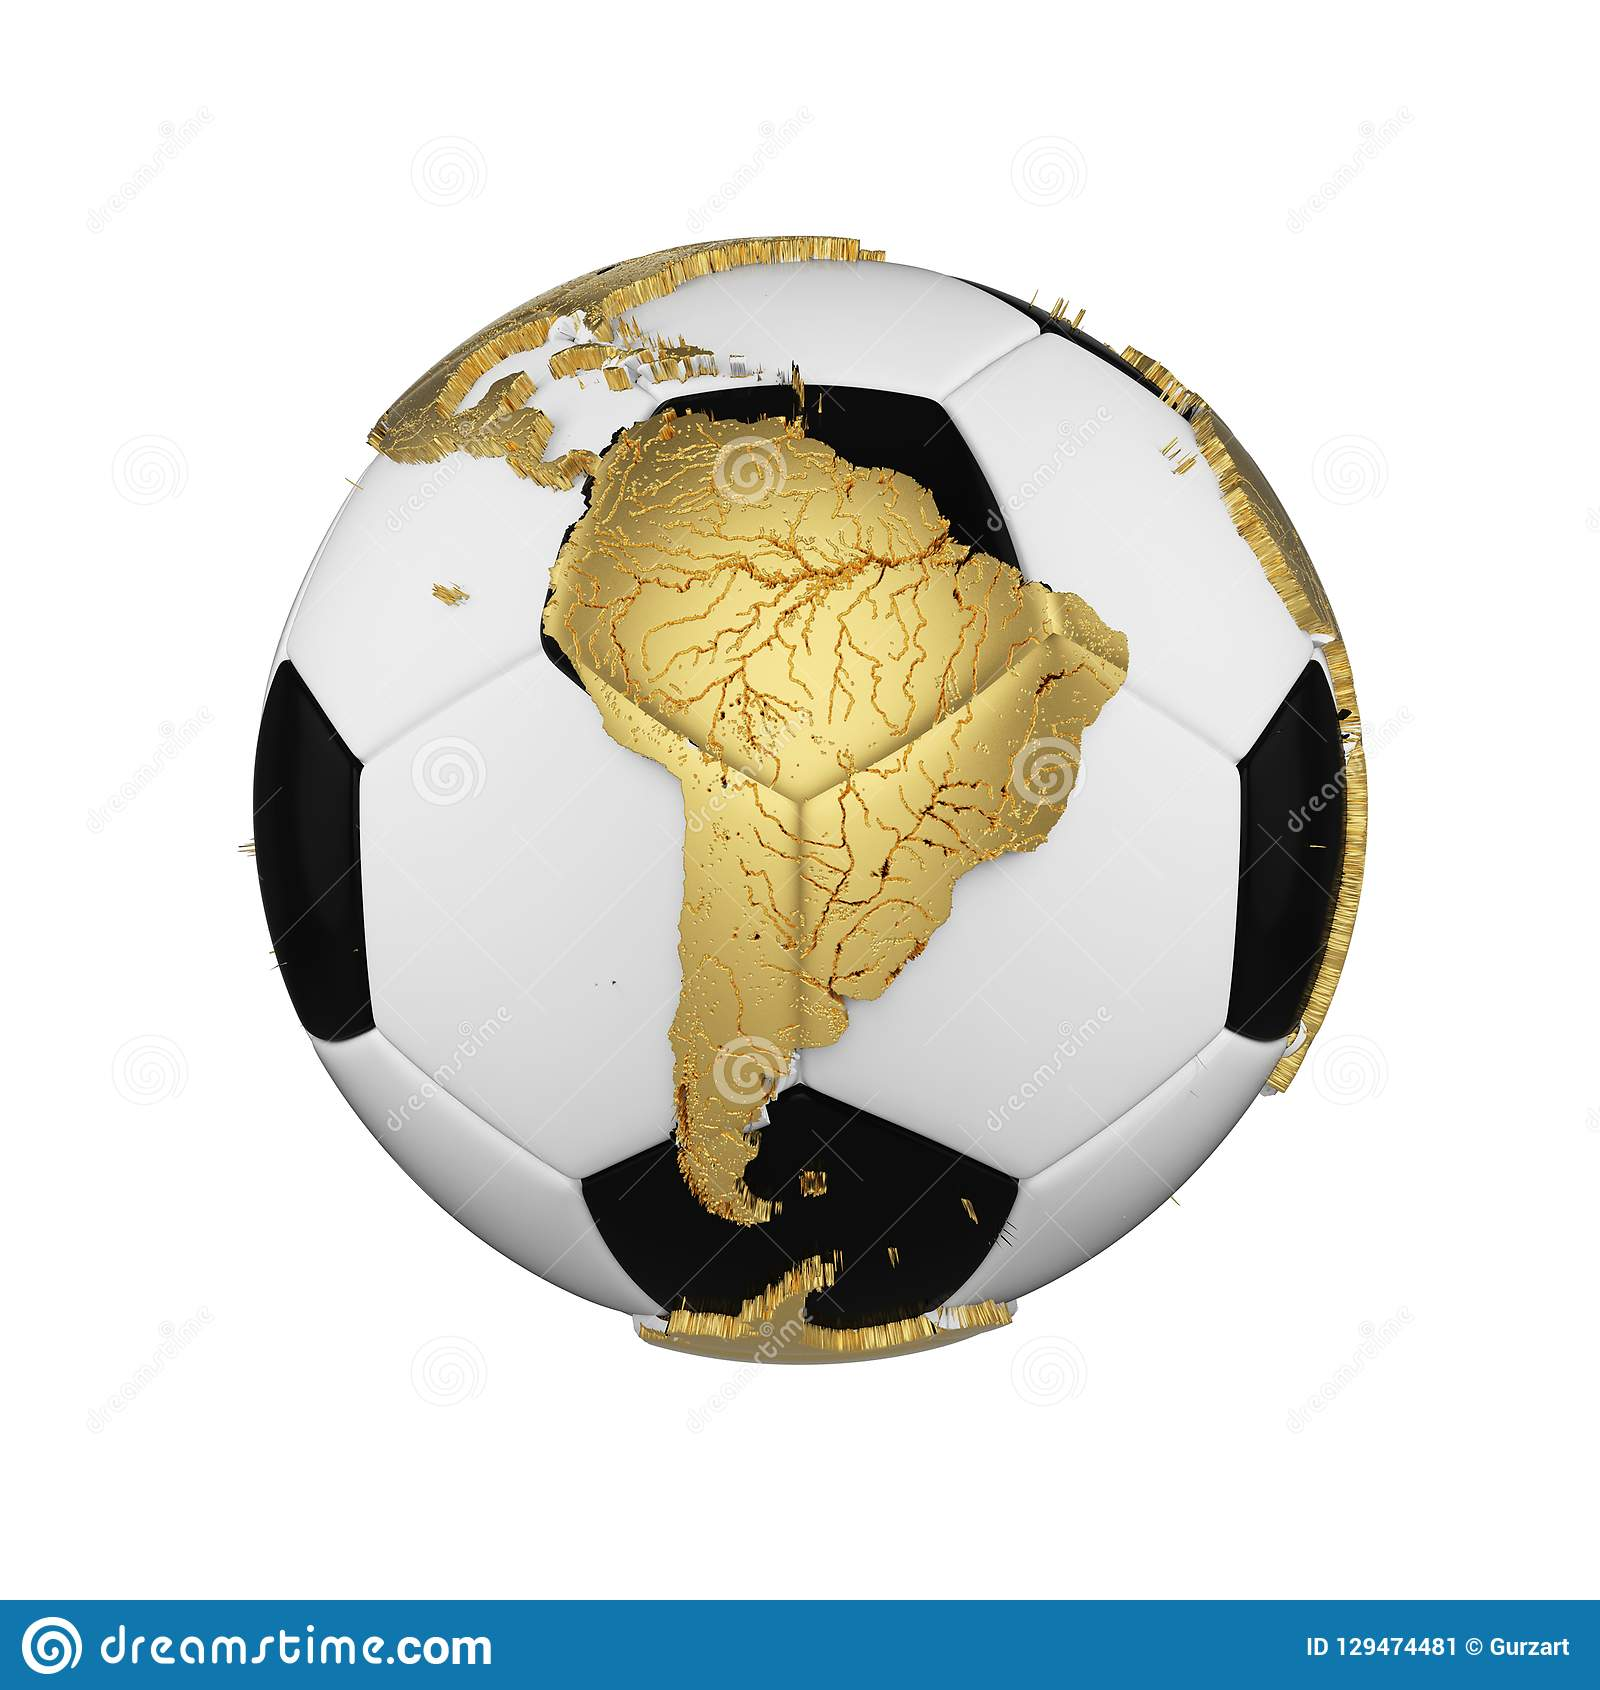 Adreano soccer ball with planet earth globe concept isolated on